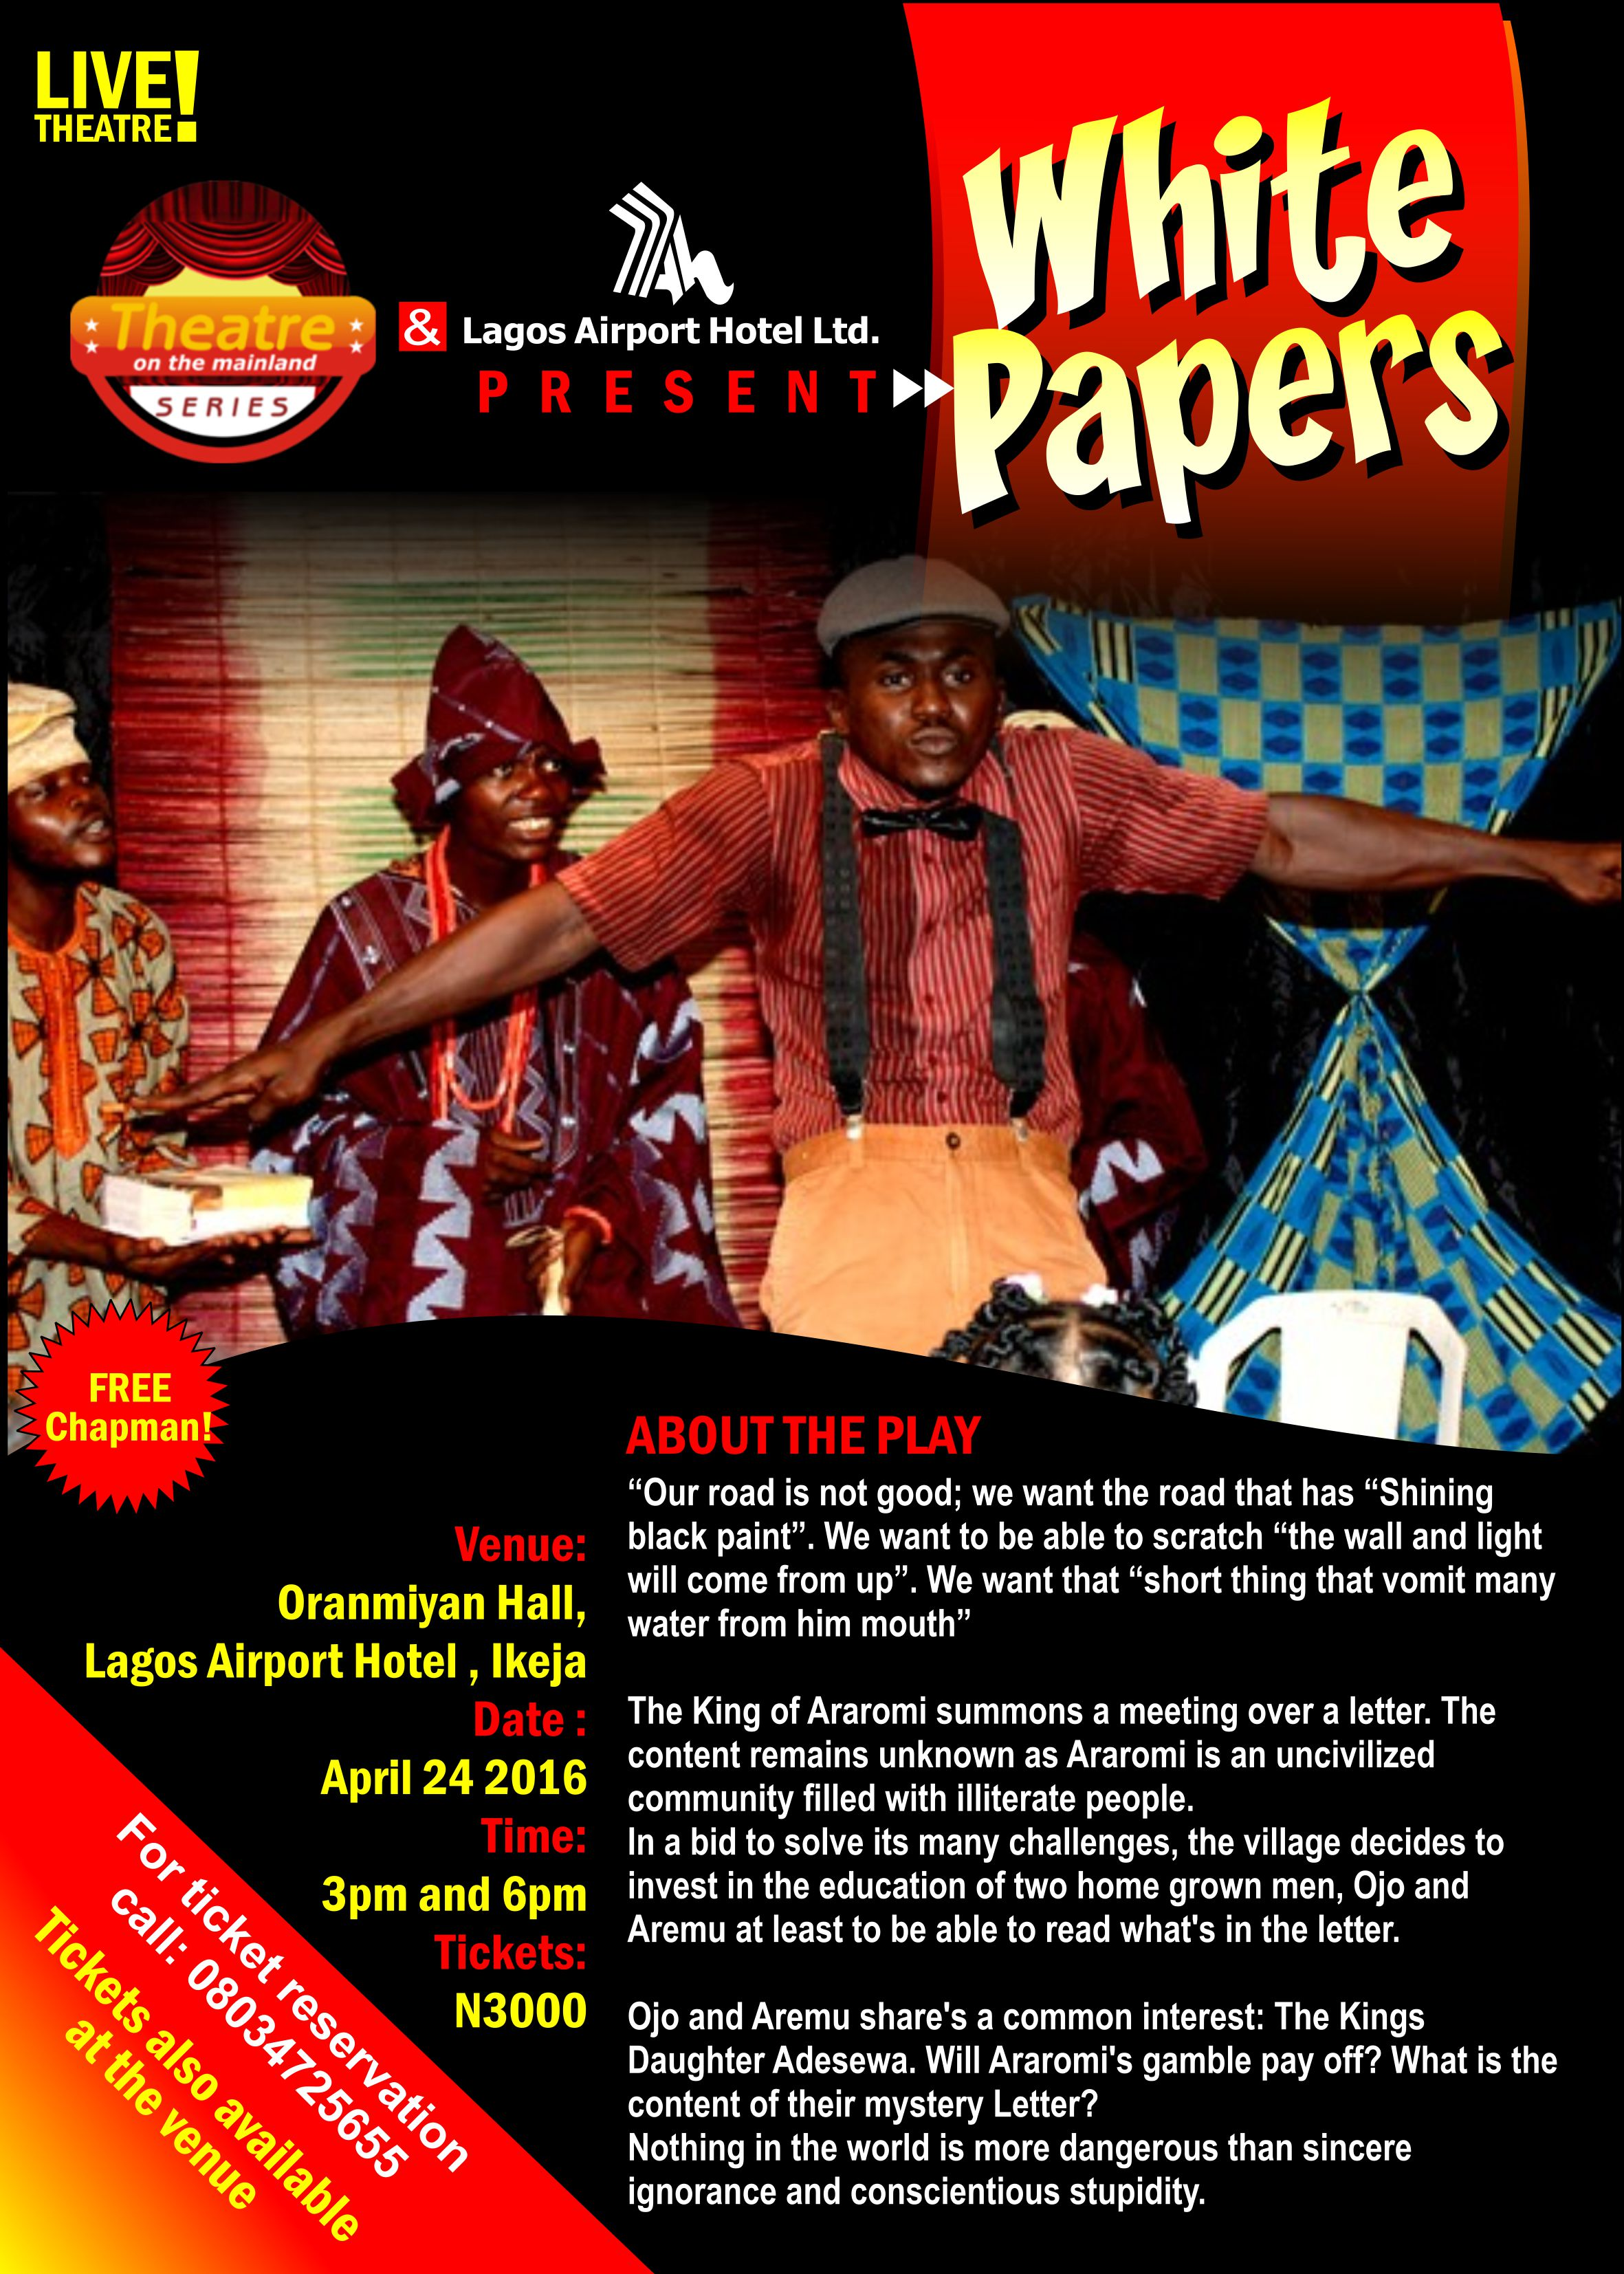 White Papers At Lagos Airport